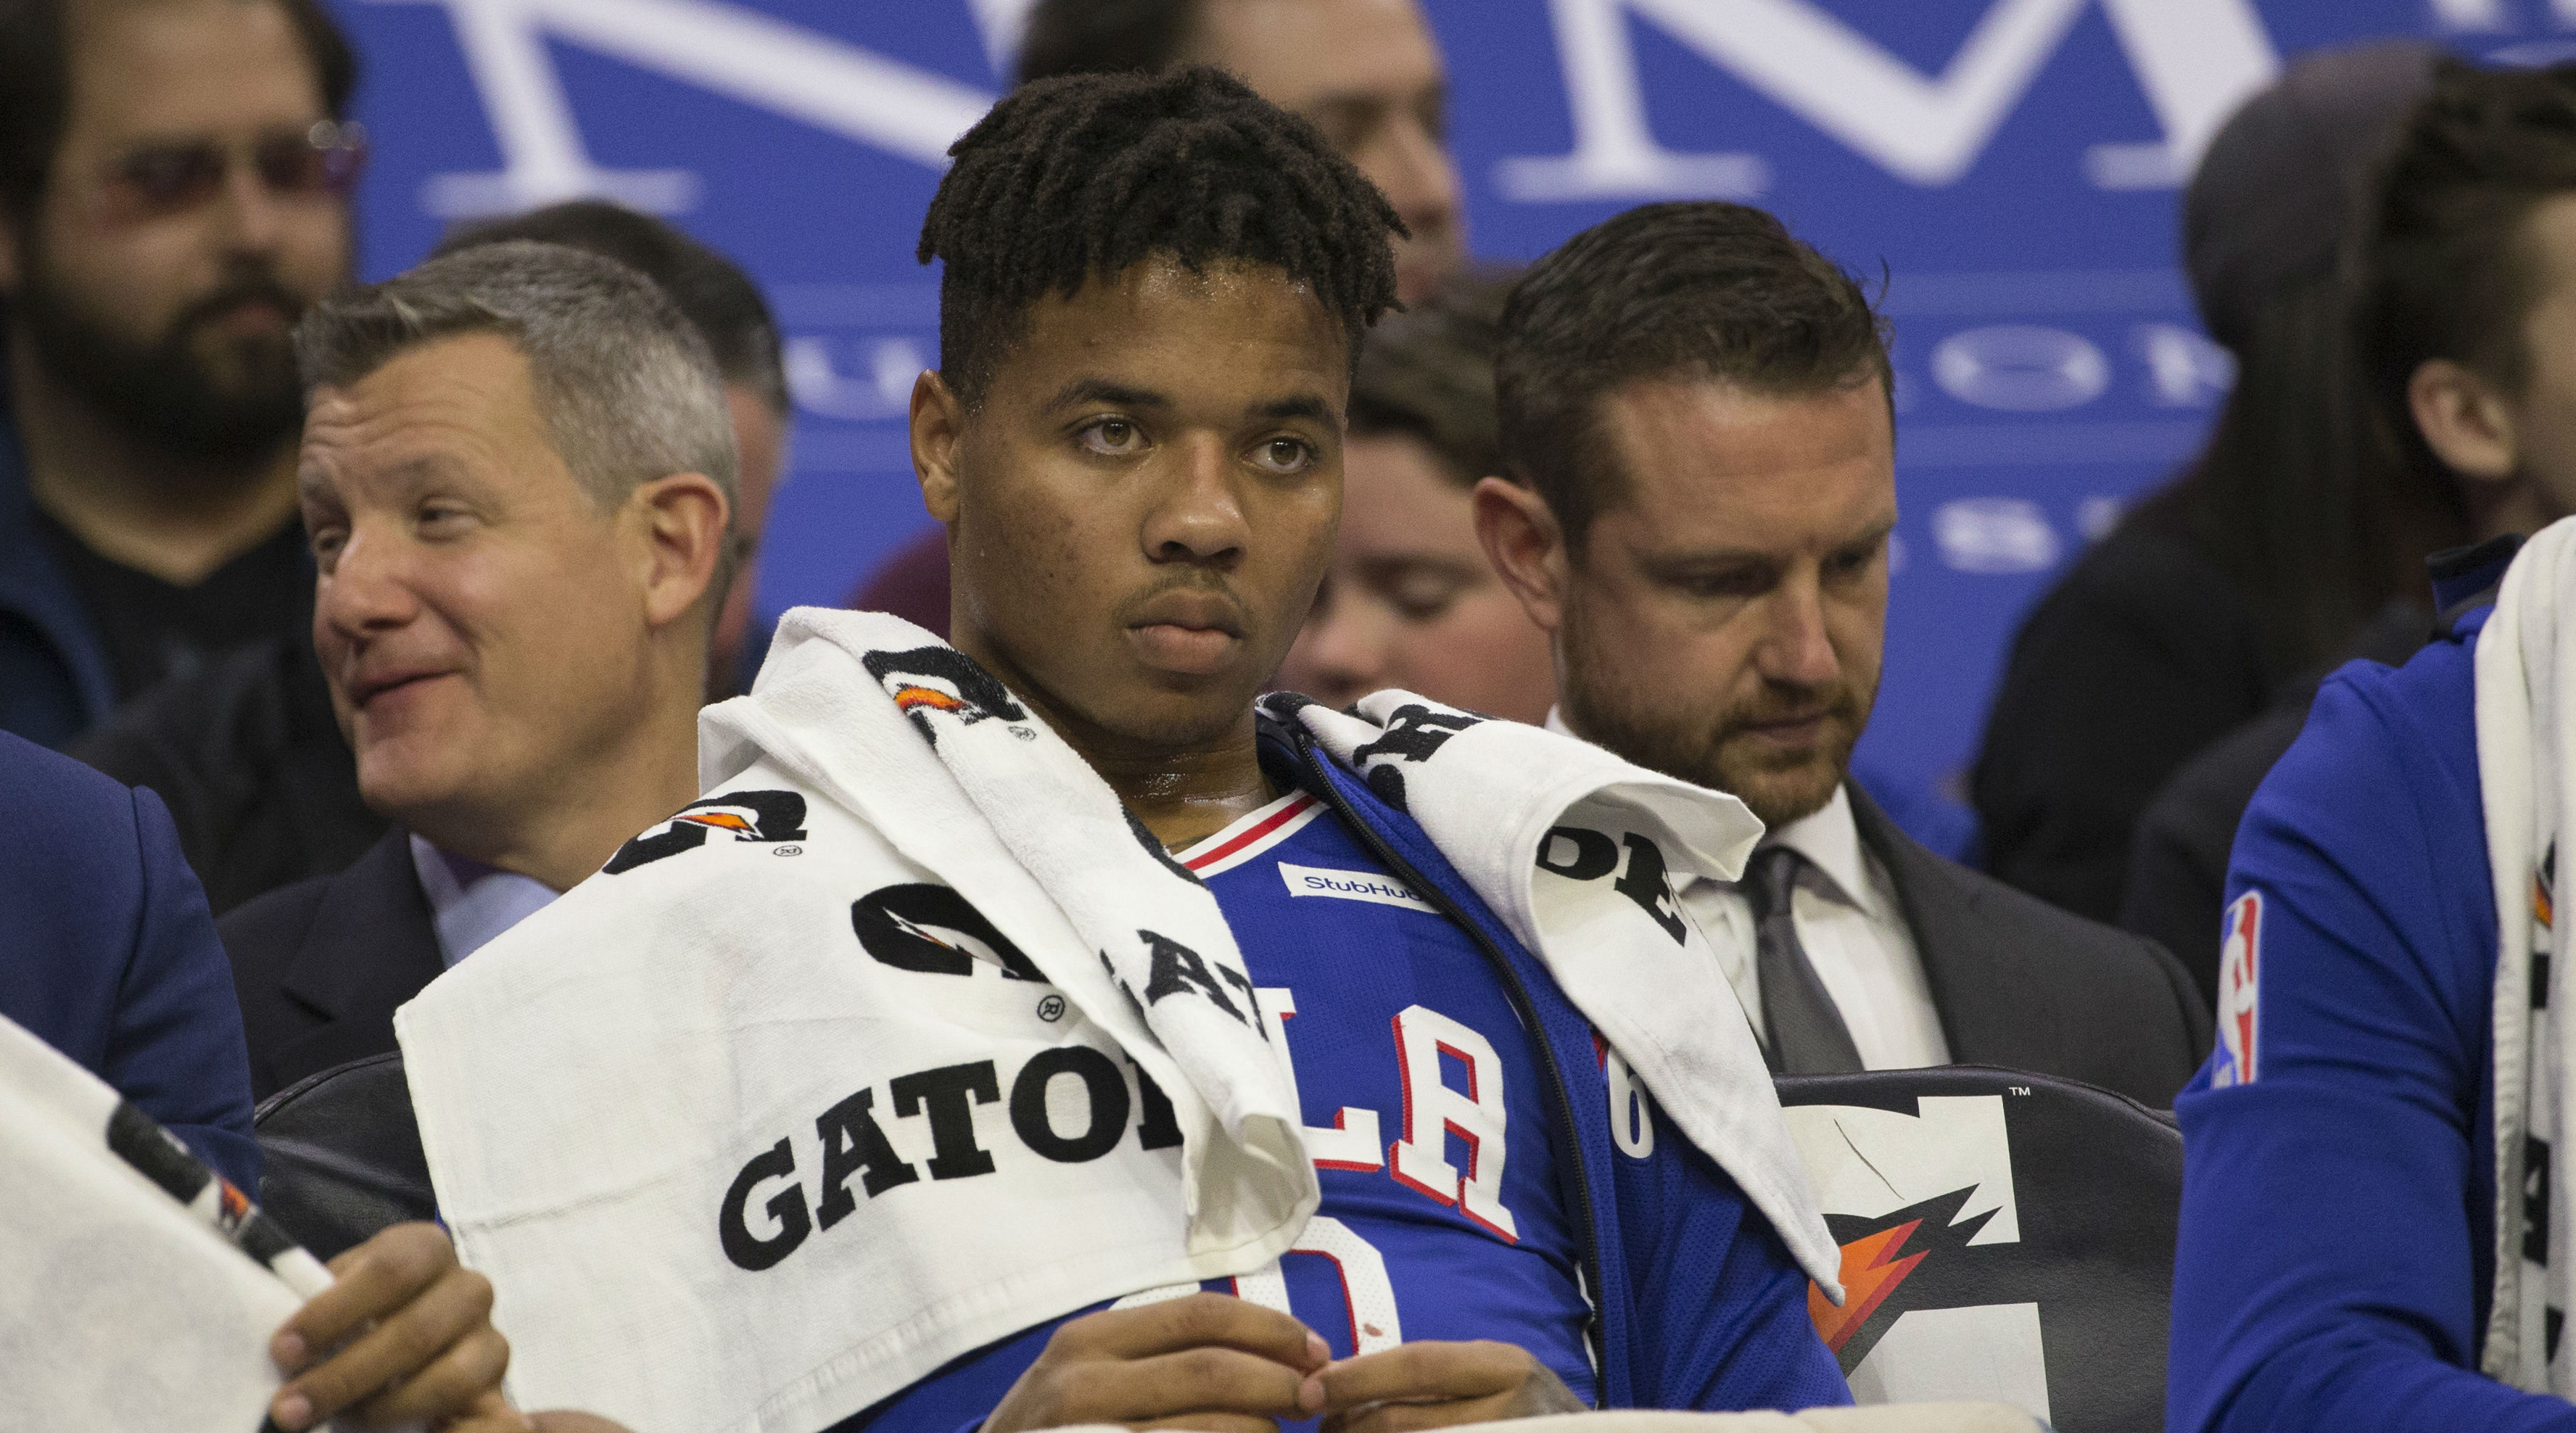 Markelle Fultz's Latest Shoulder Saga Could Potentially Implicate the Law